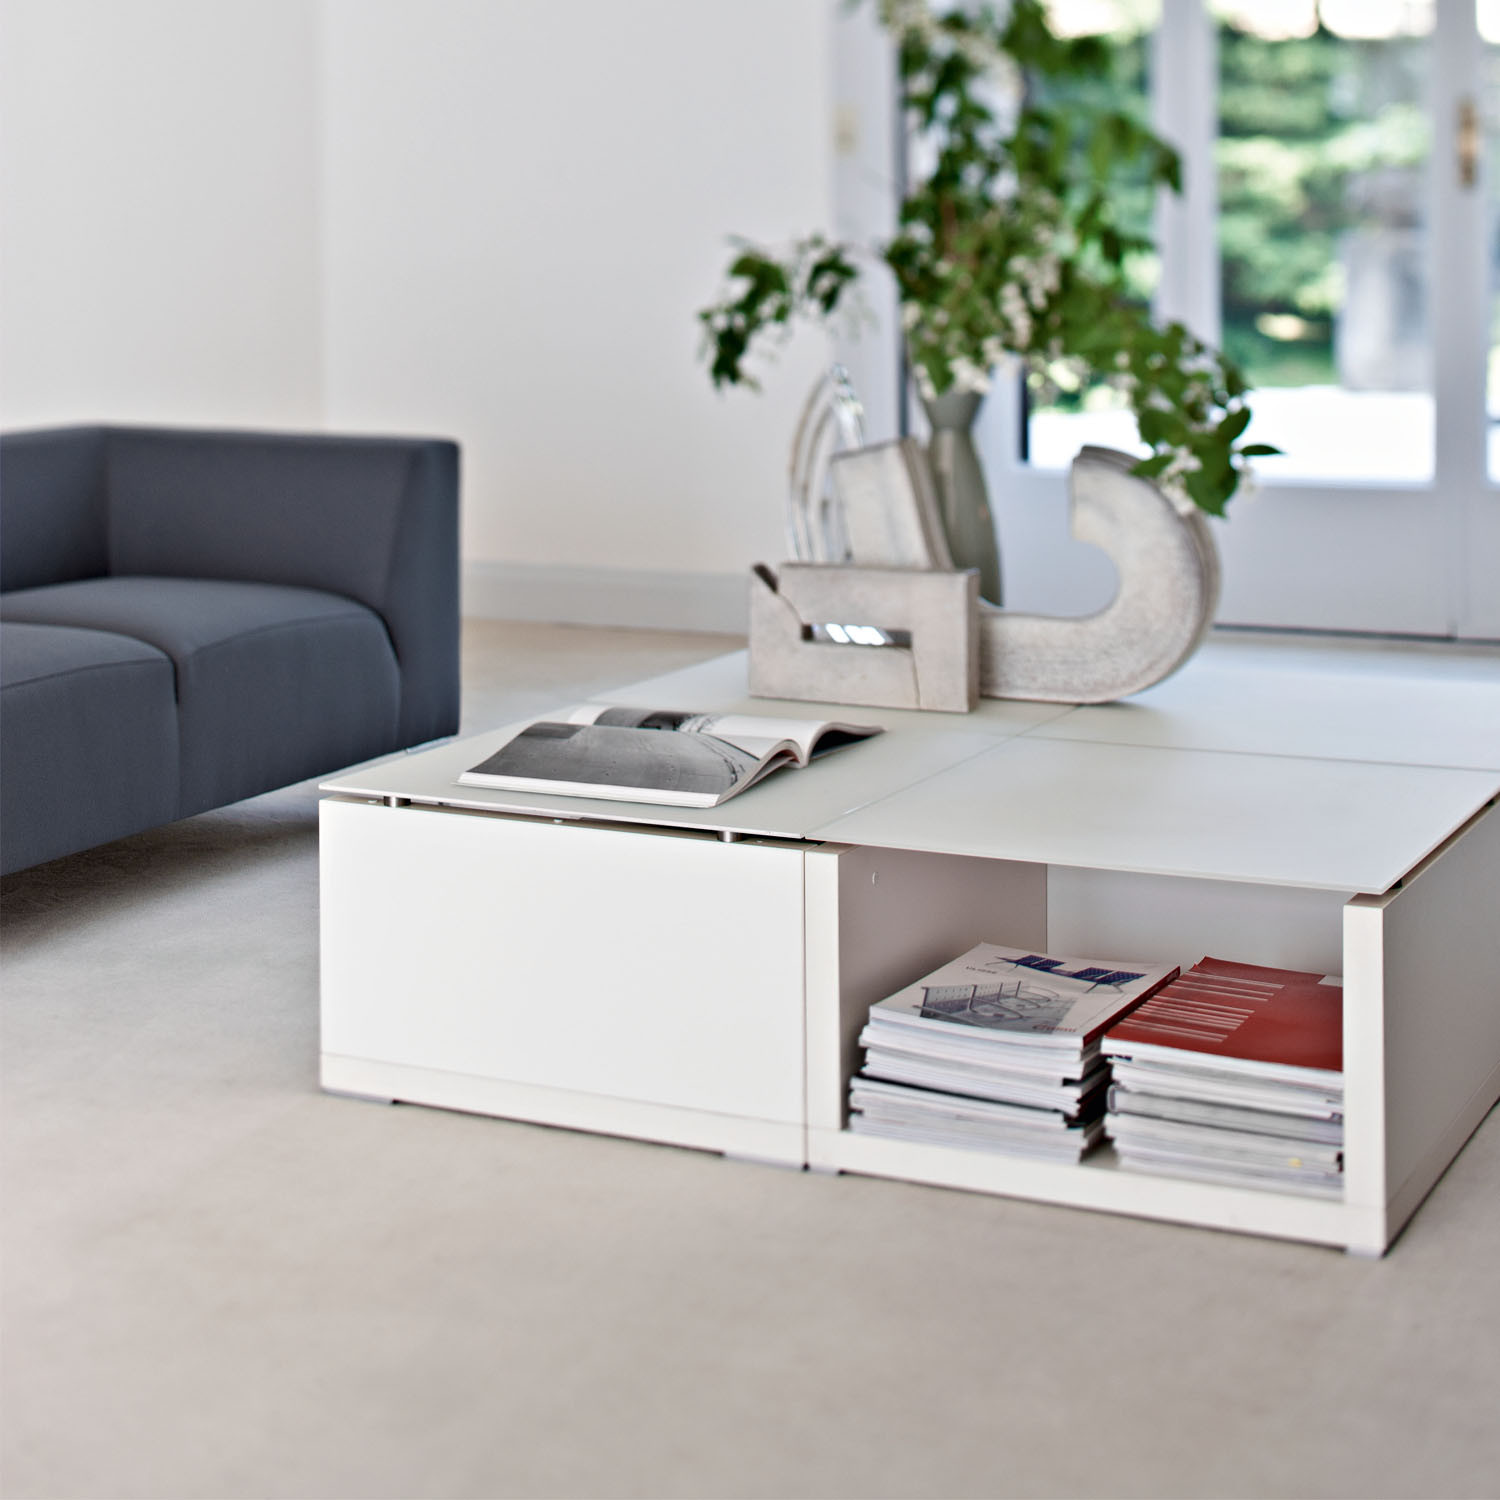 Kuadra White Coffee Table with Storage